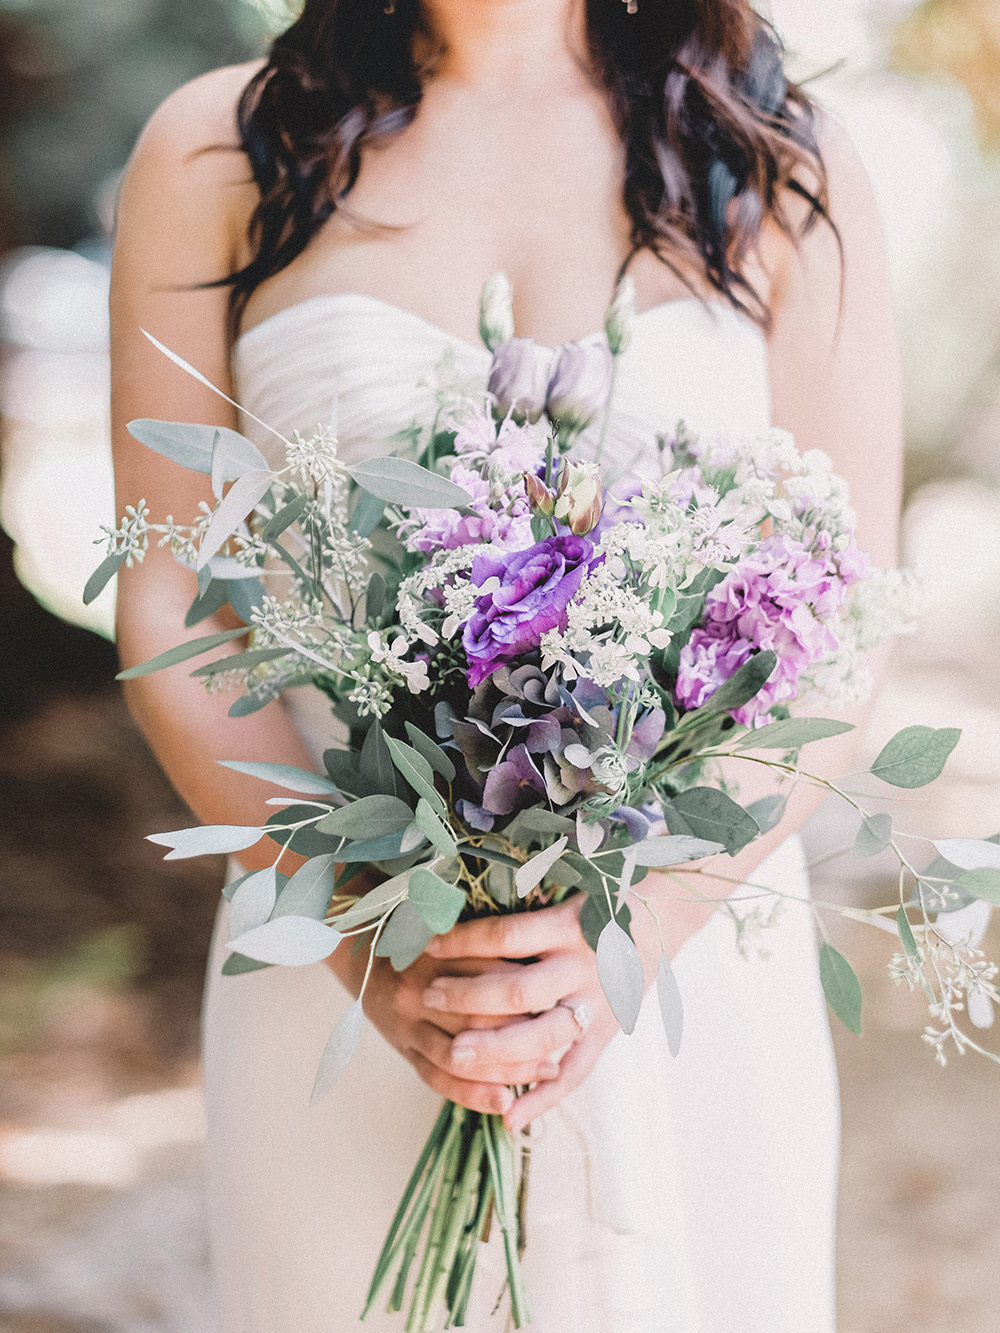 Bride holding the bouquet, fine art photography